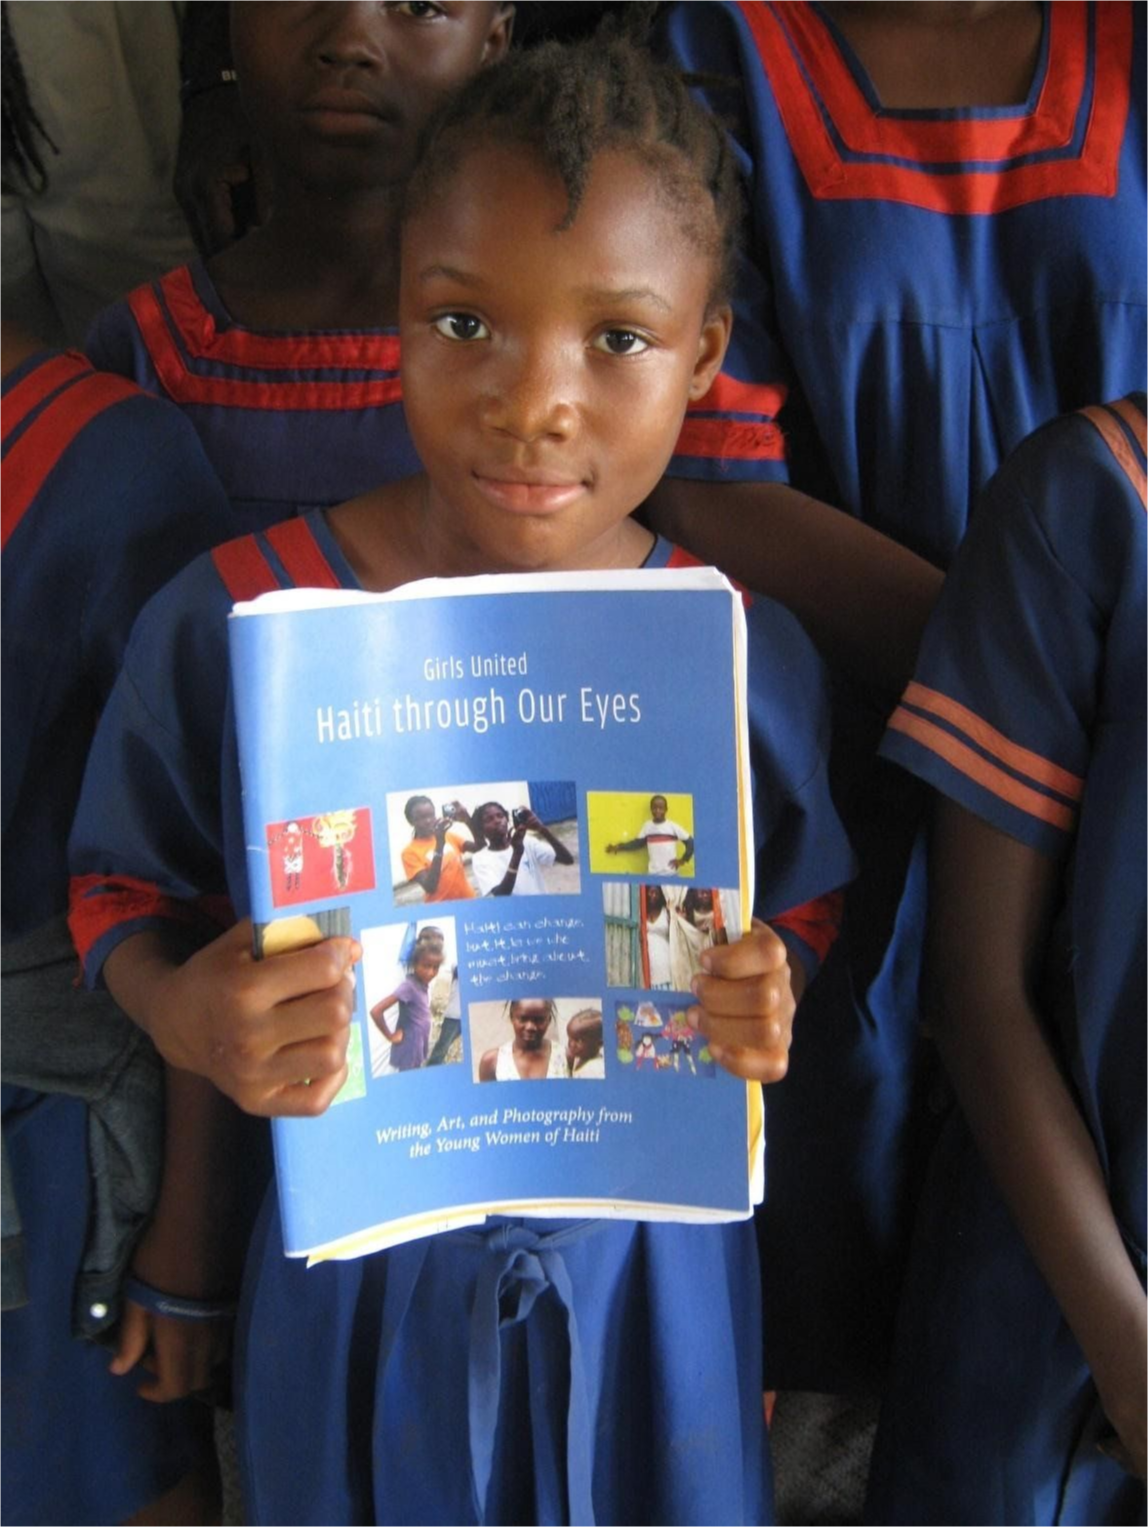 A young girl holding up her book surrounded by her classmates